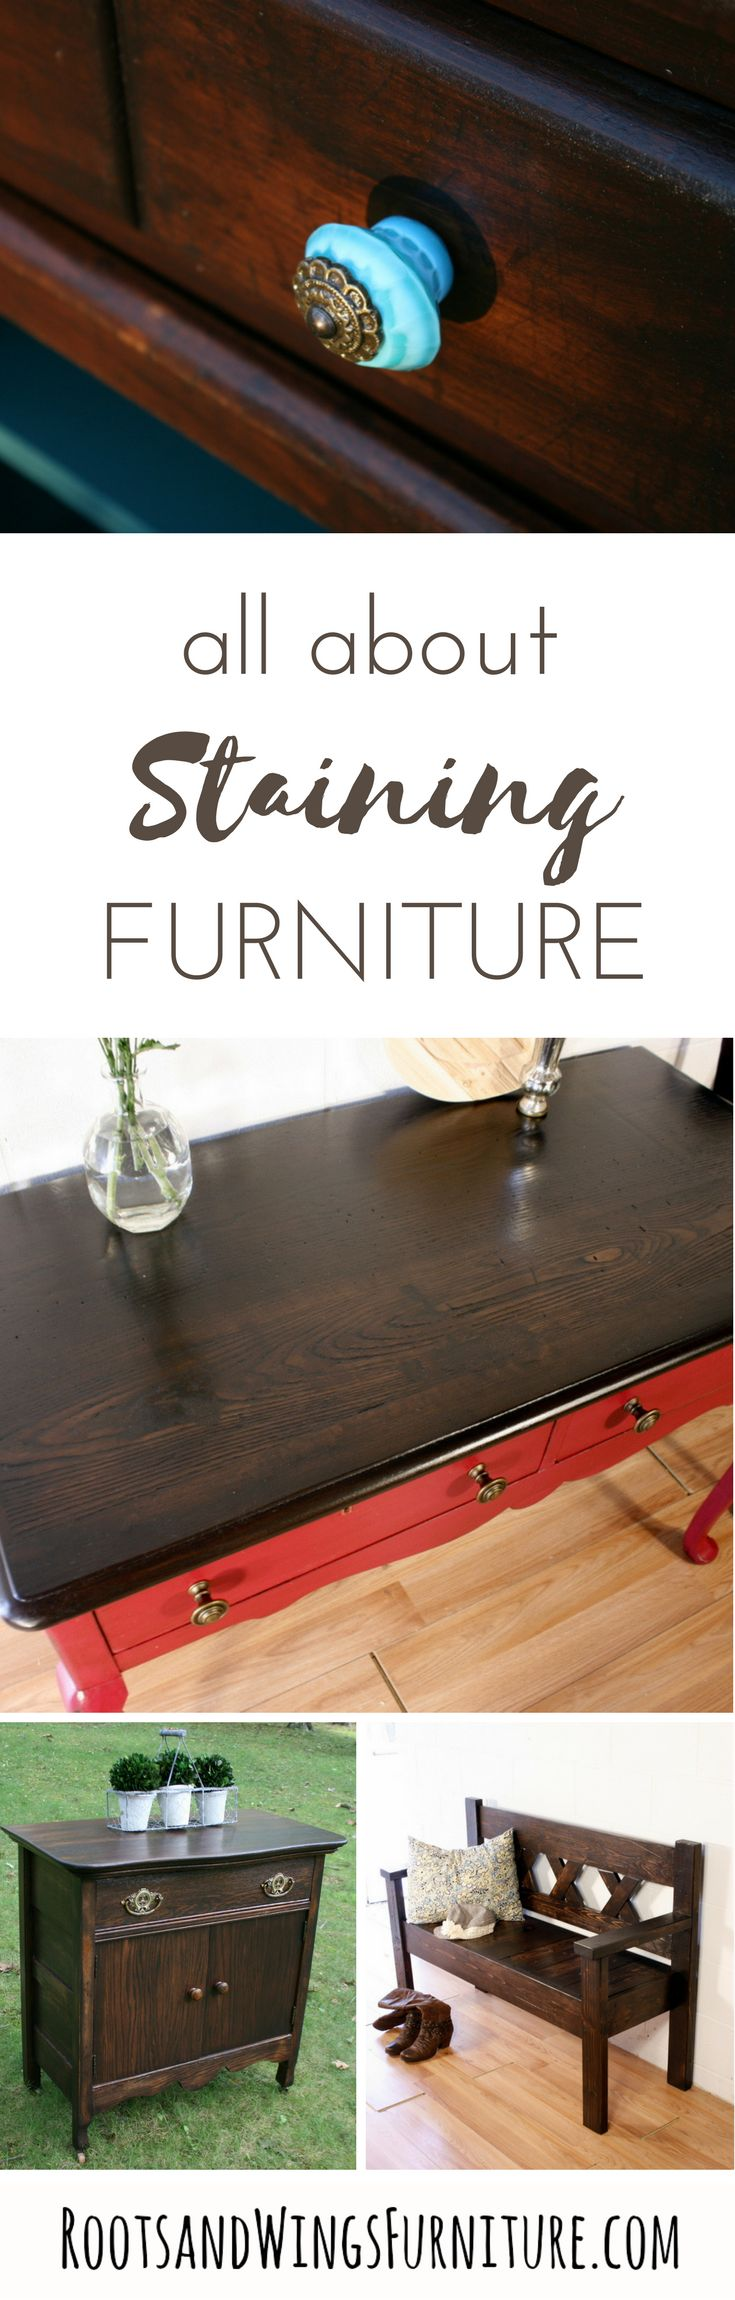 Gel stains oil based saah furniture - All About Stain Oil Based Gel Stain Water Based